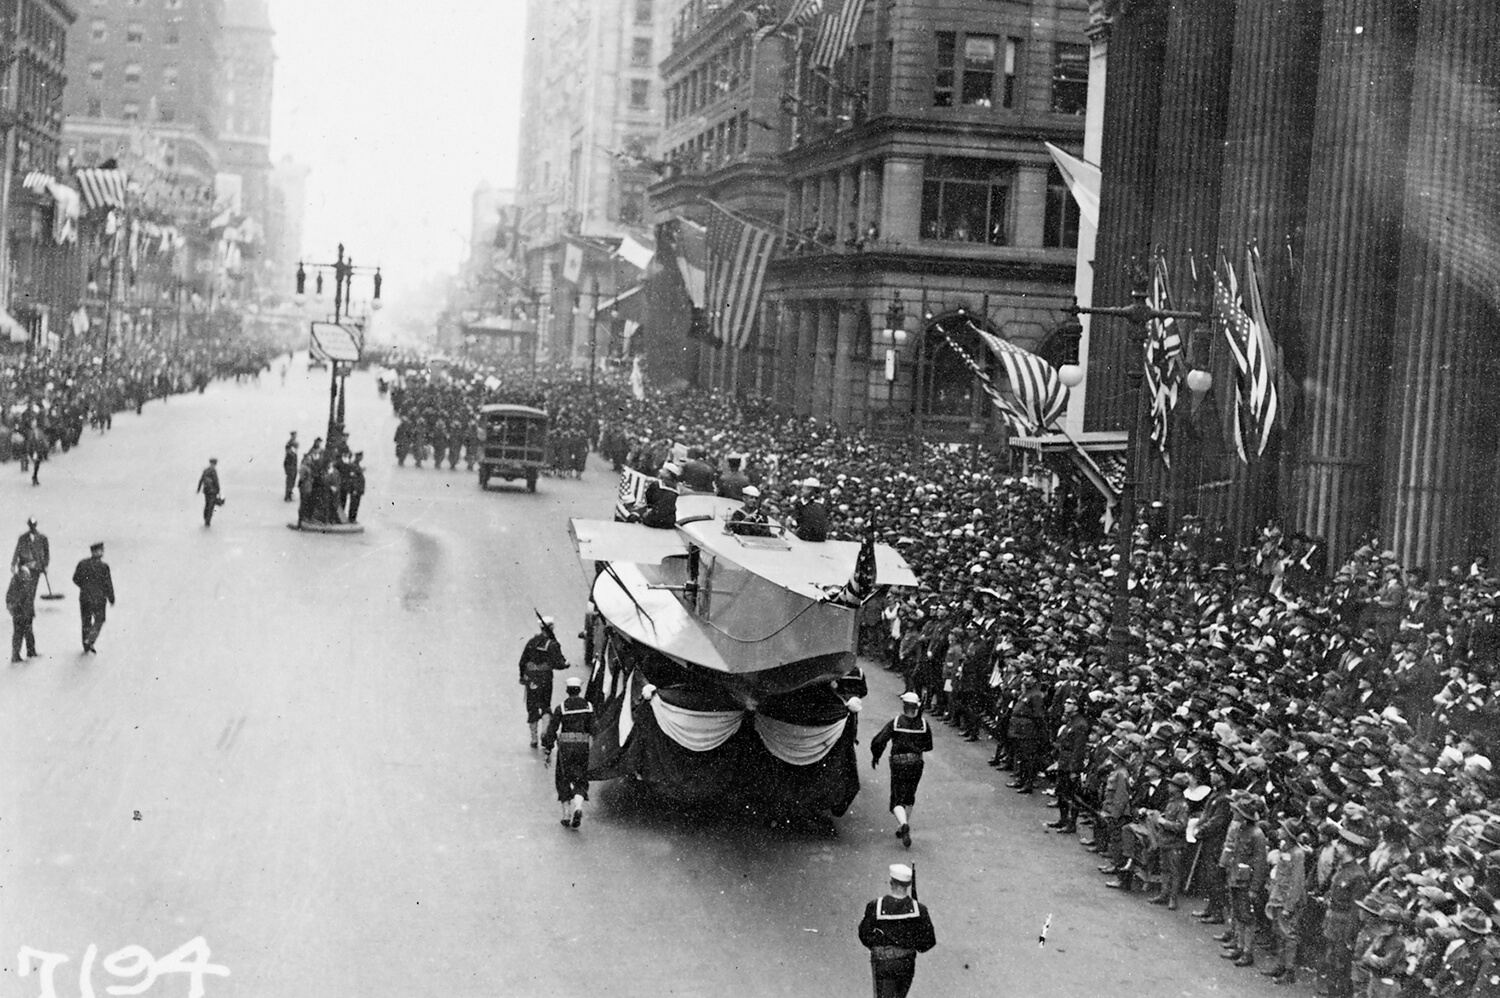 Hundreds of thousands of people attended the Liberty Loan parade in Philadelphia in September 1918, an event that contributed to the spread of the Spanish flu. Joshua Plotkin and colleagues at Princeton have shared an analysis of the optimal ways to intervene with public health measures to avoid a serious second peak of cases in the coronavirus pandemic.